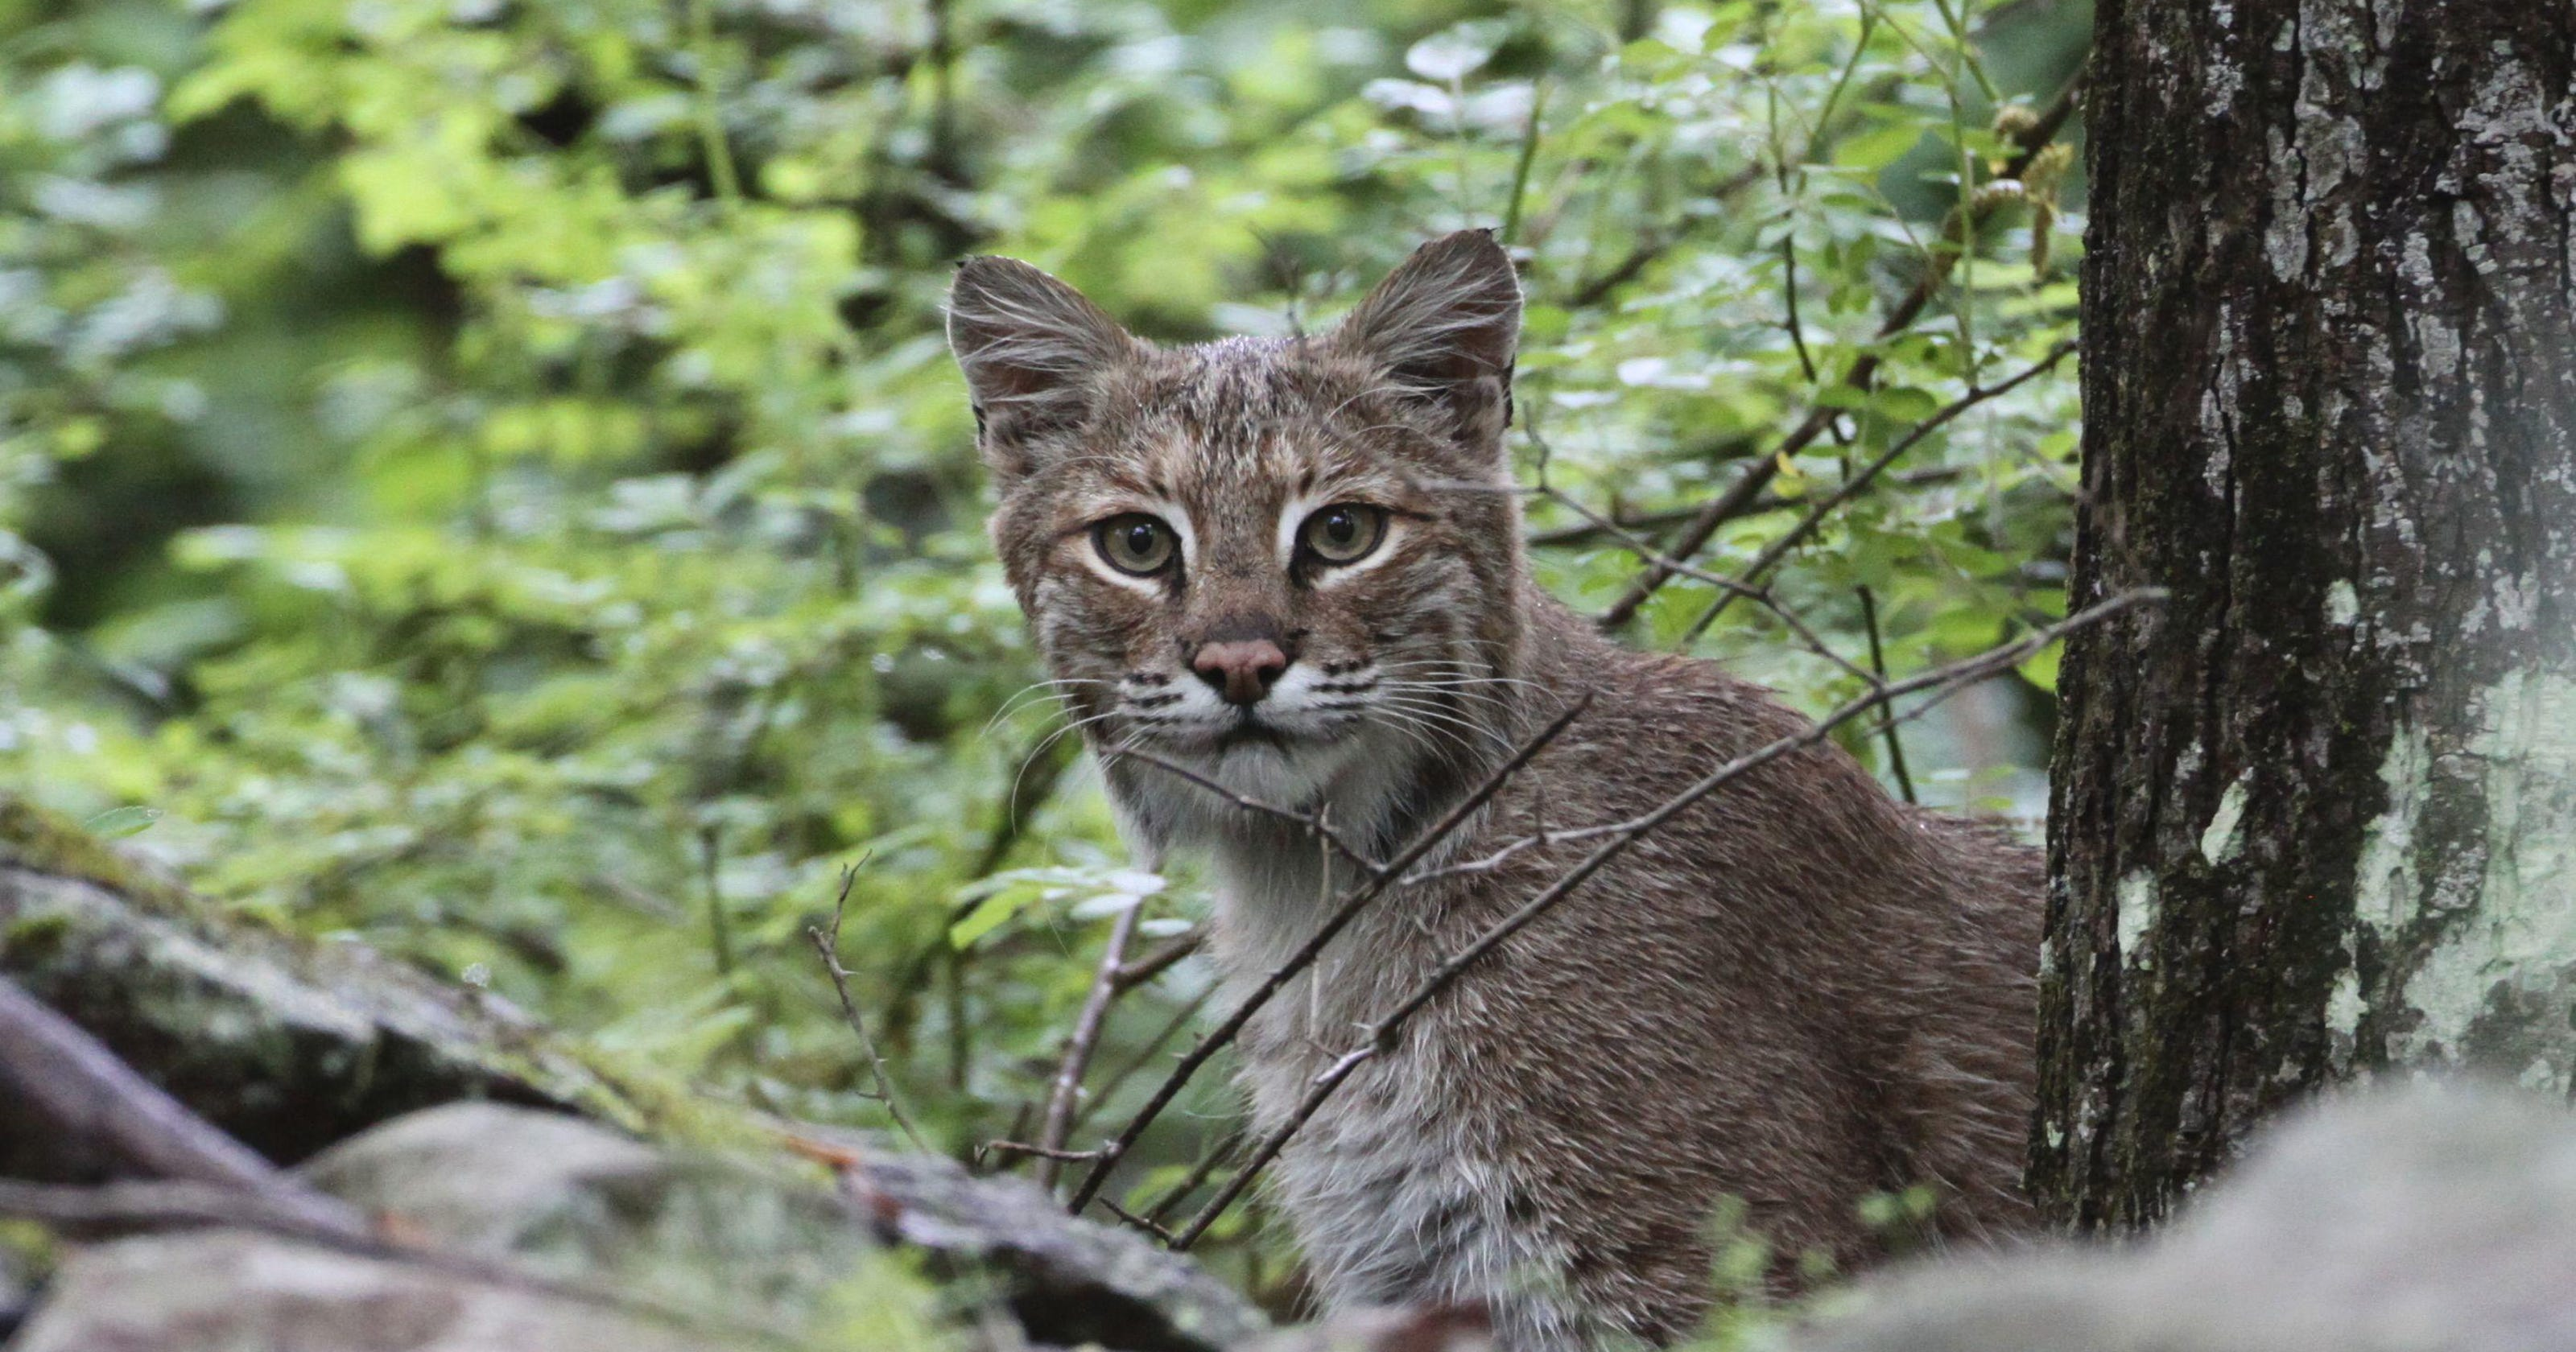 OPINION: Is the elusive bobcat here in NJ to stay?